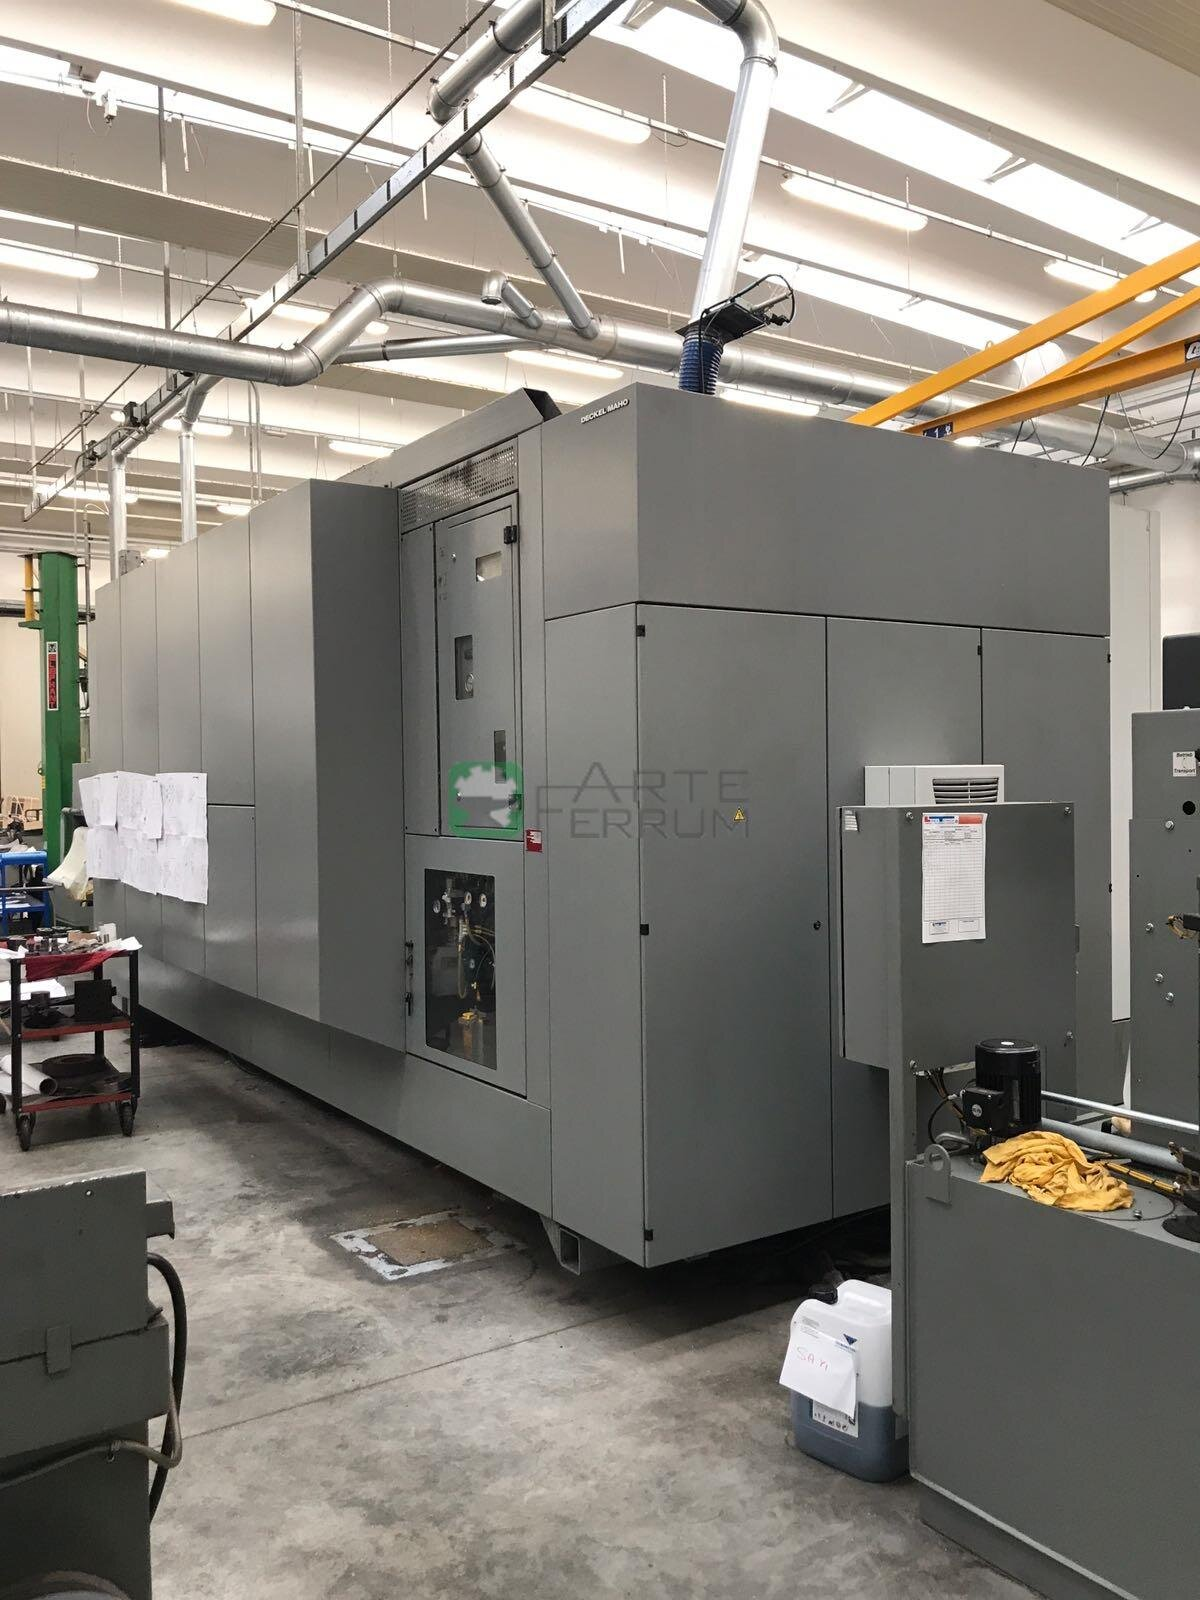 DMG DMF 250 LINEAR center (10)